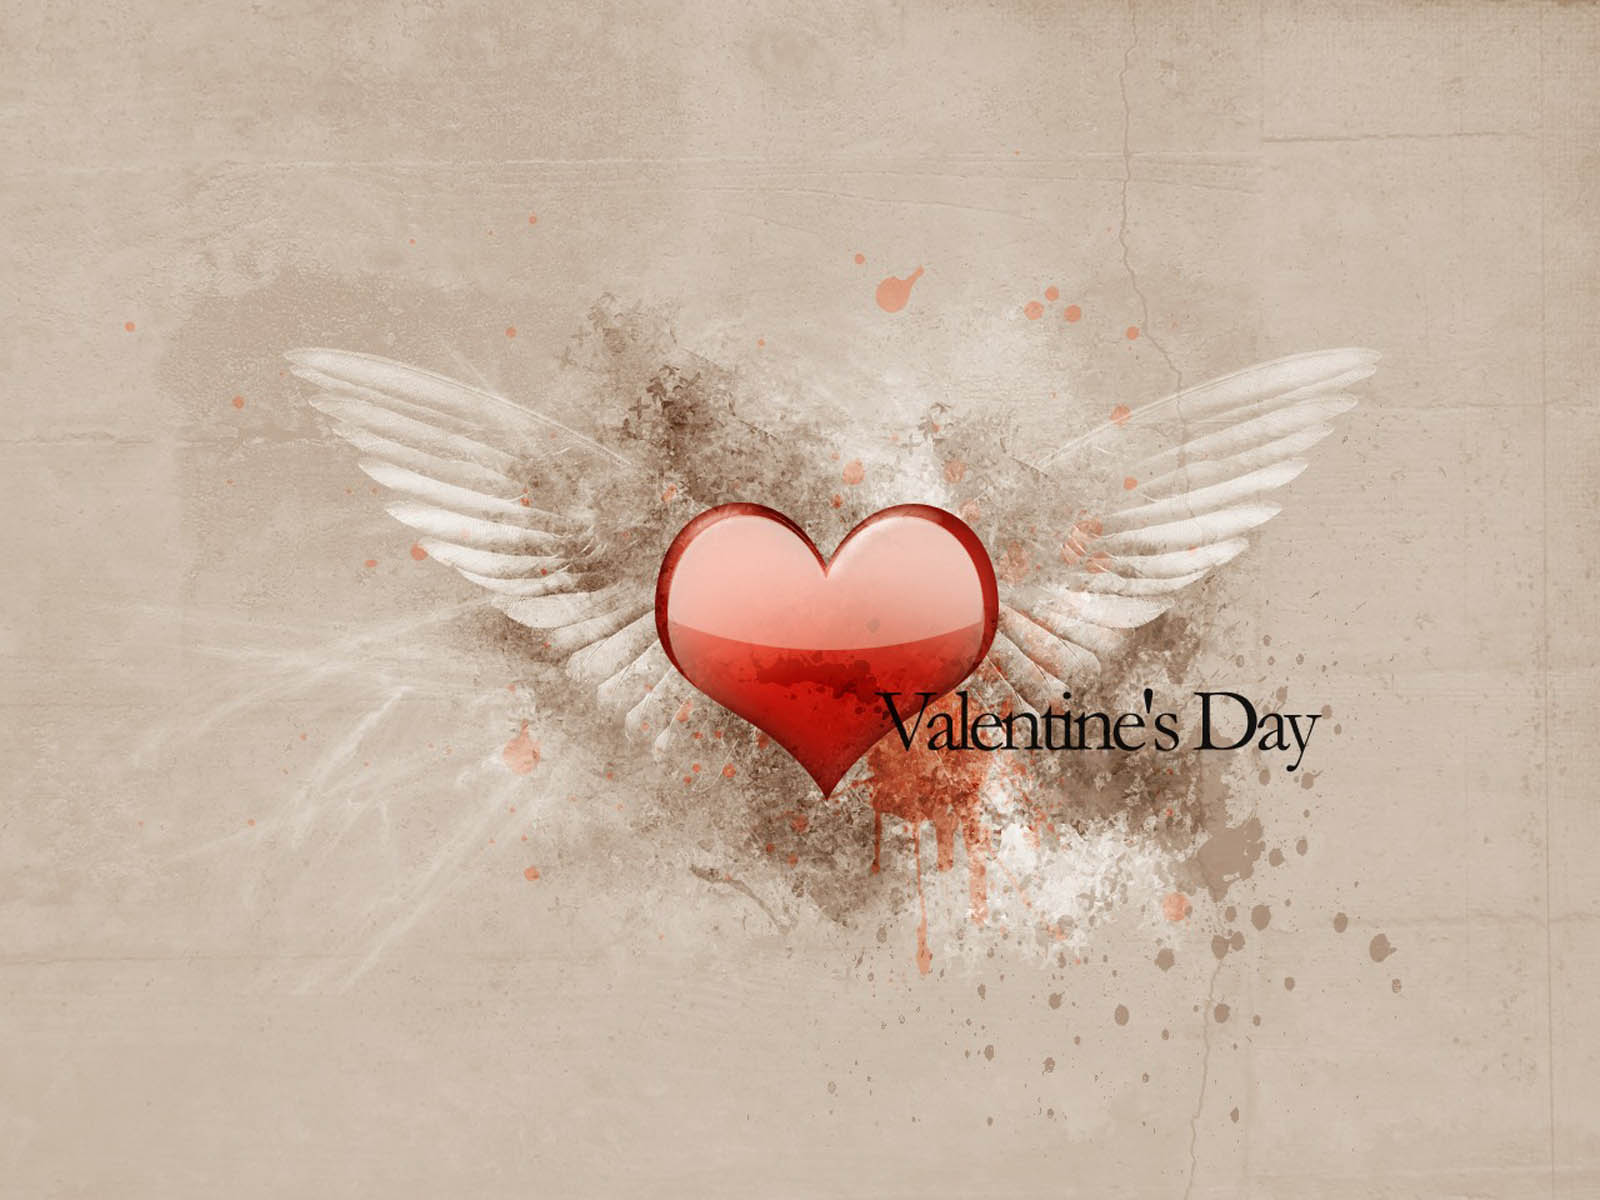 Desktop Wallpapers Valentines Day Desktop Backgrounds Valentines Day 1600x1200